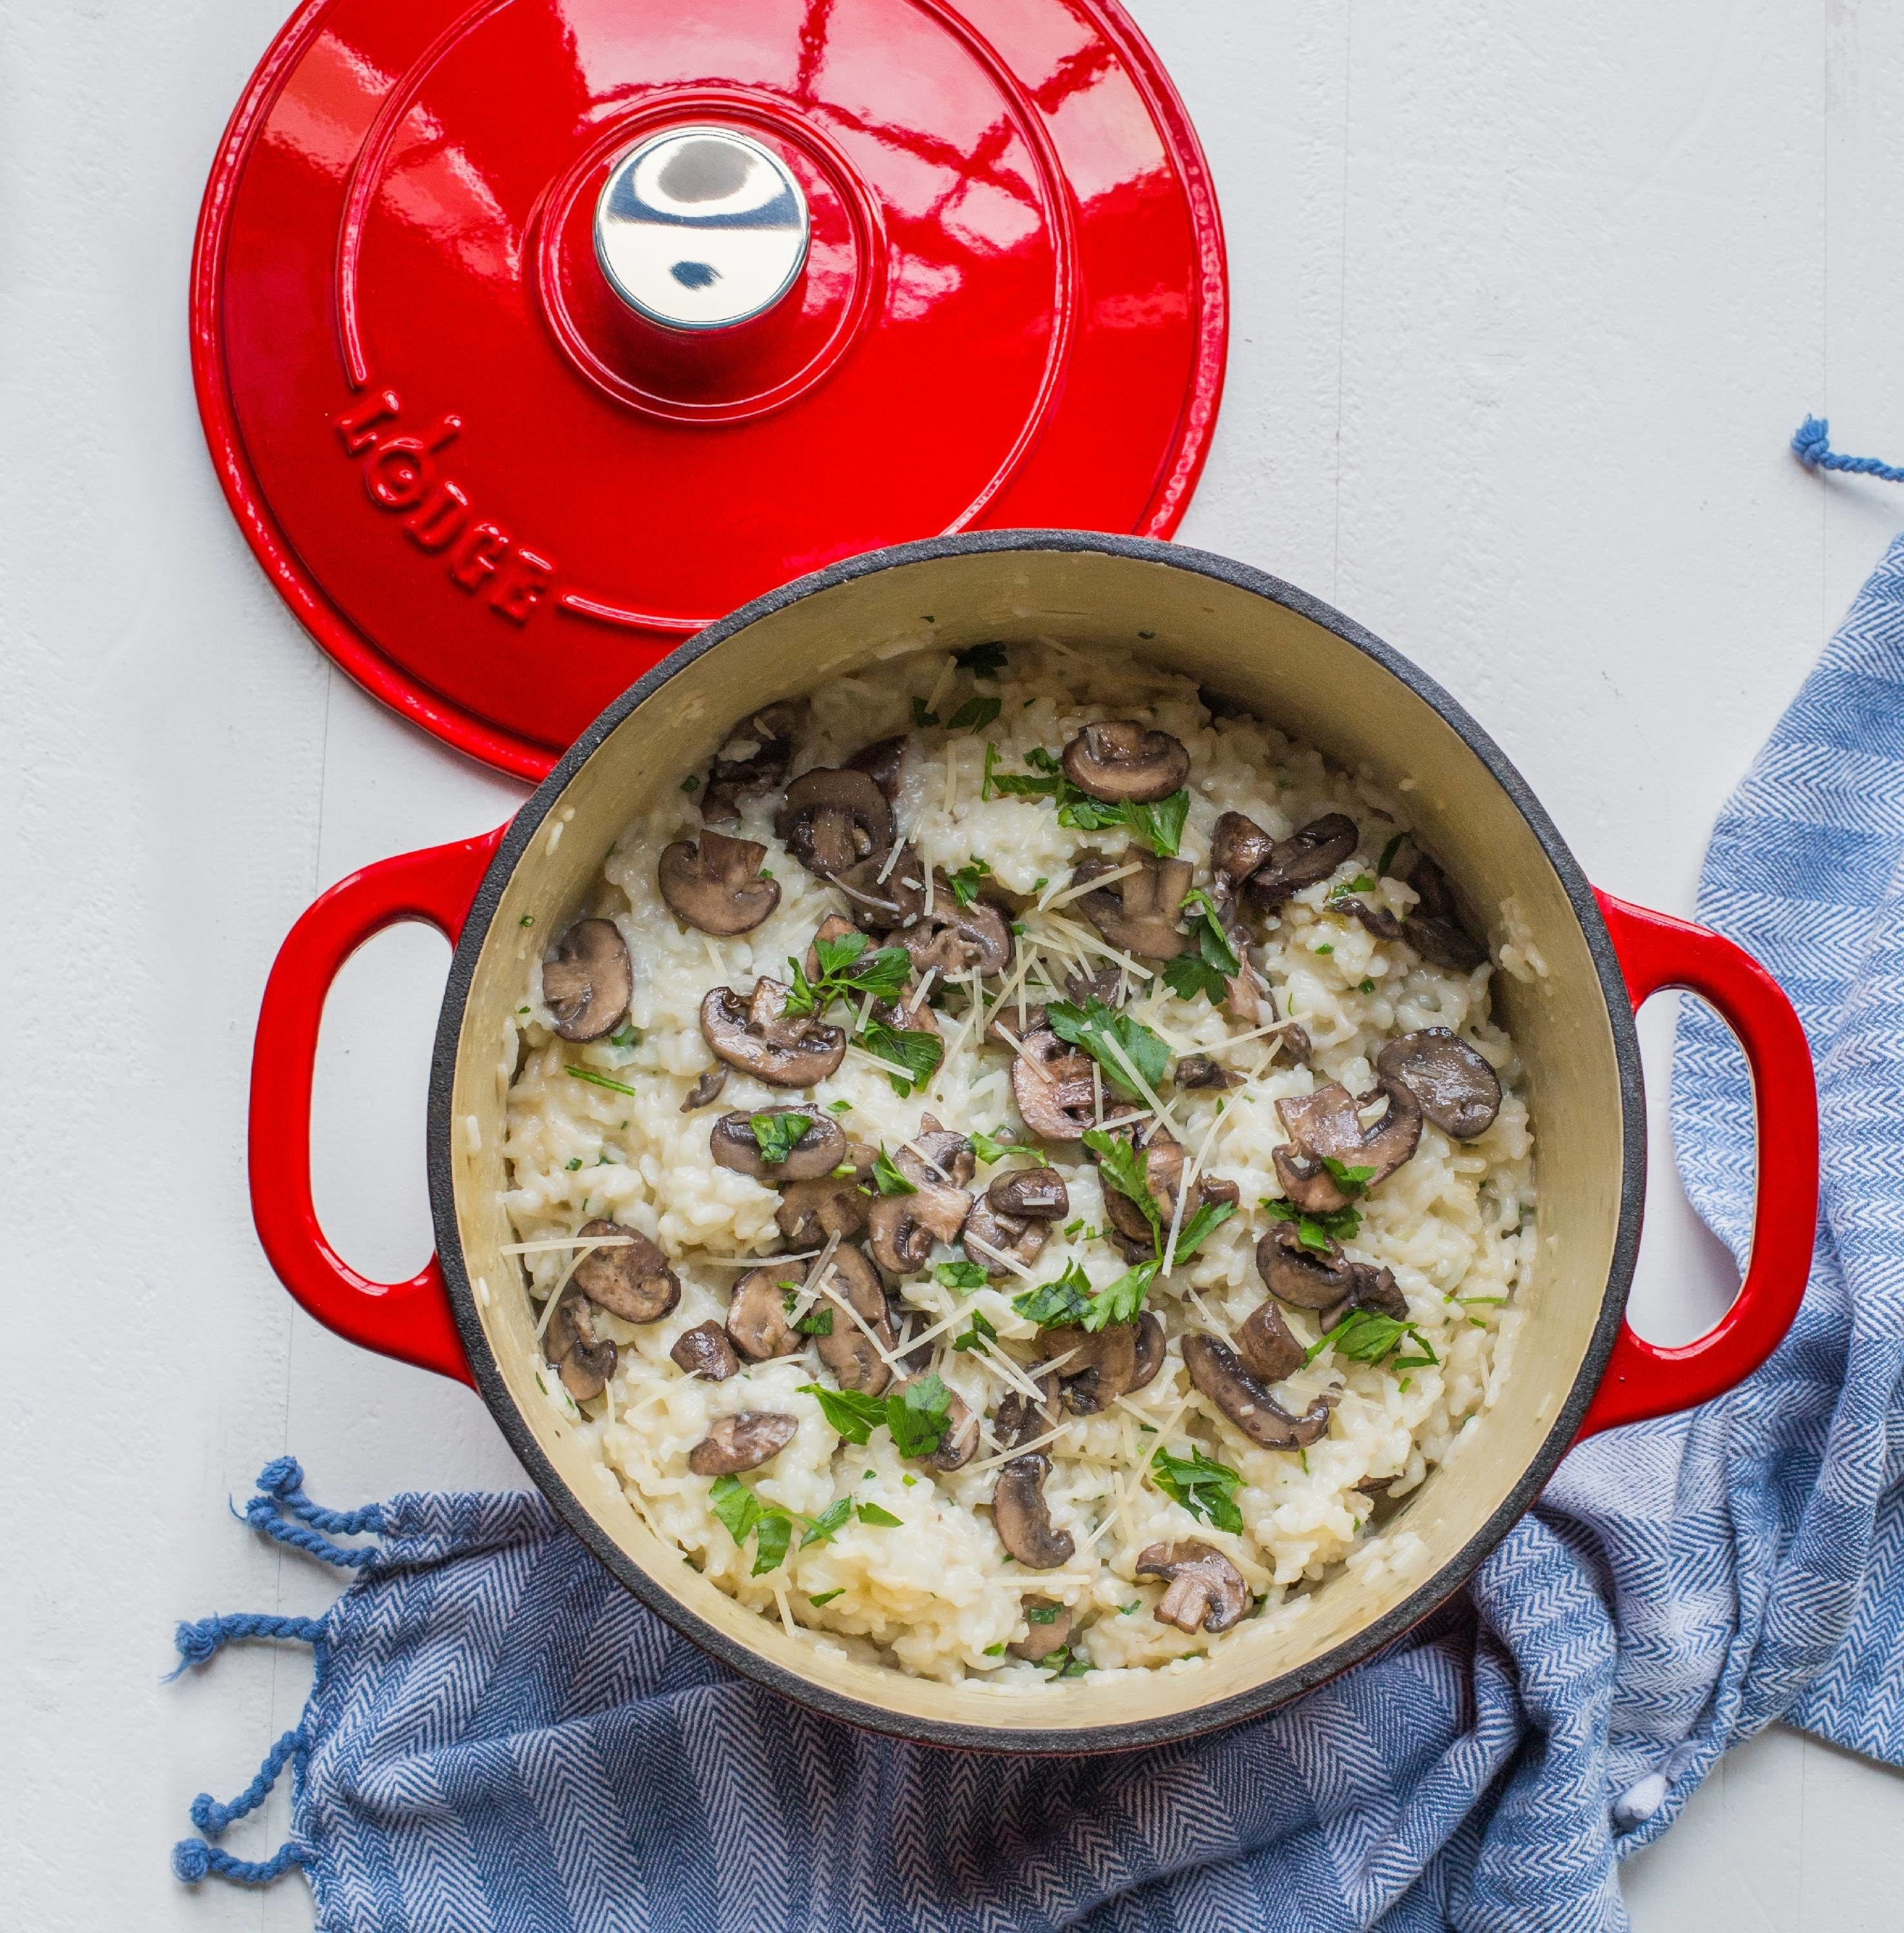 The red dutch oven cooking a rice dish